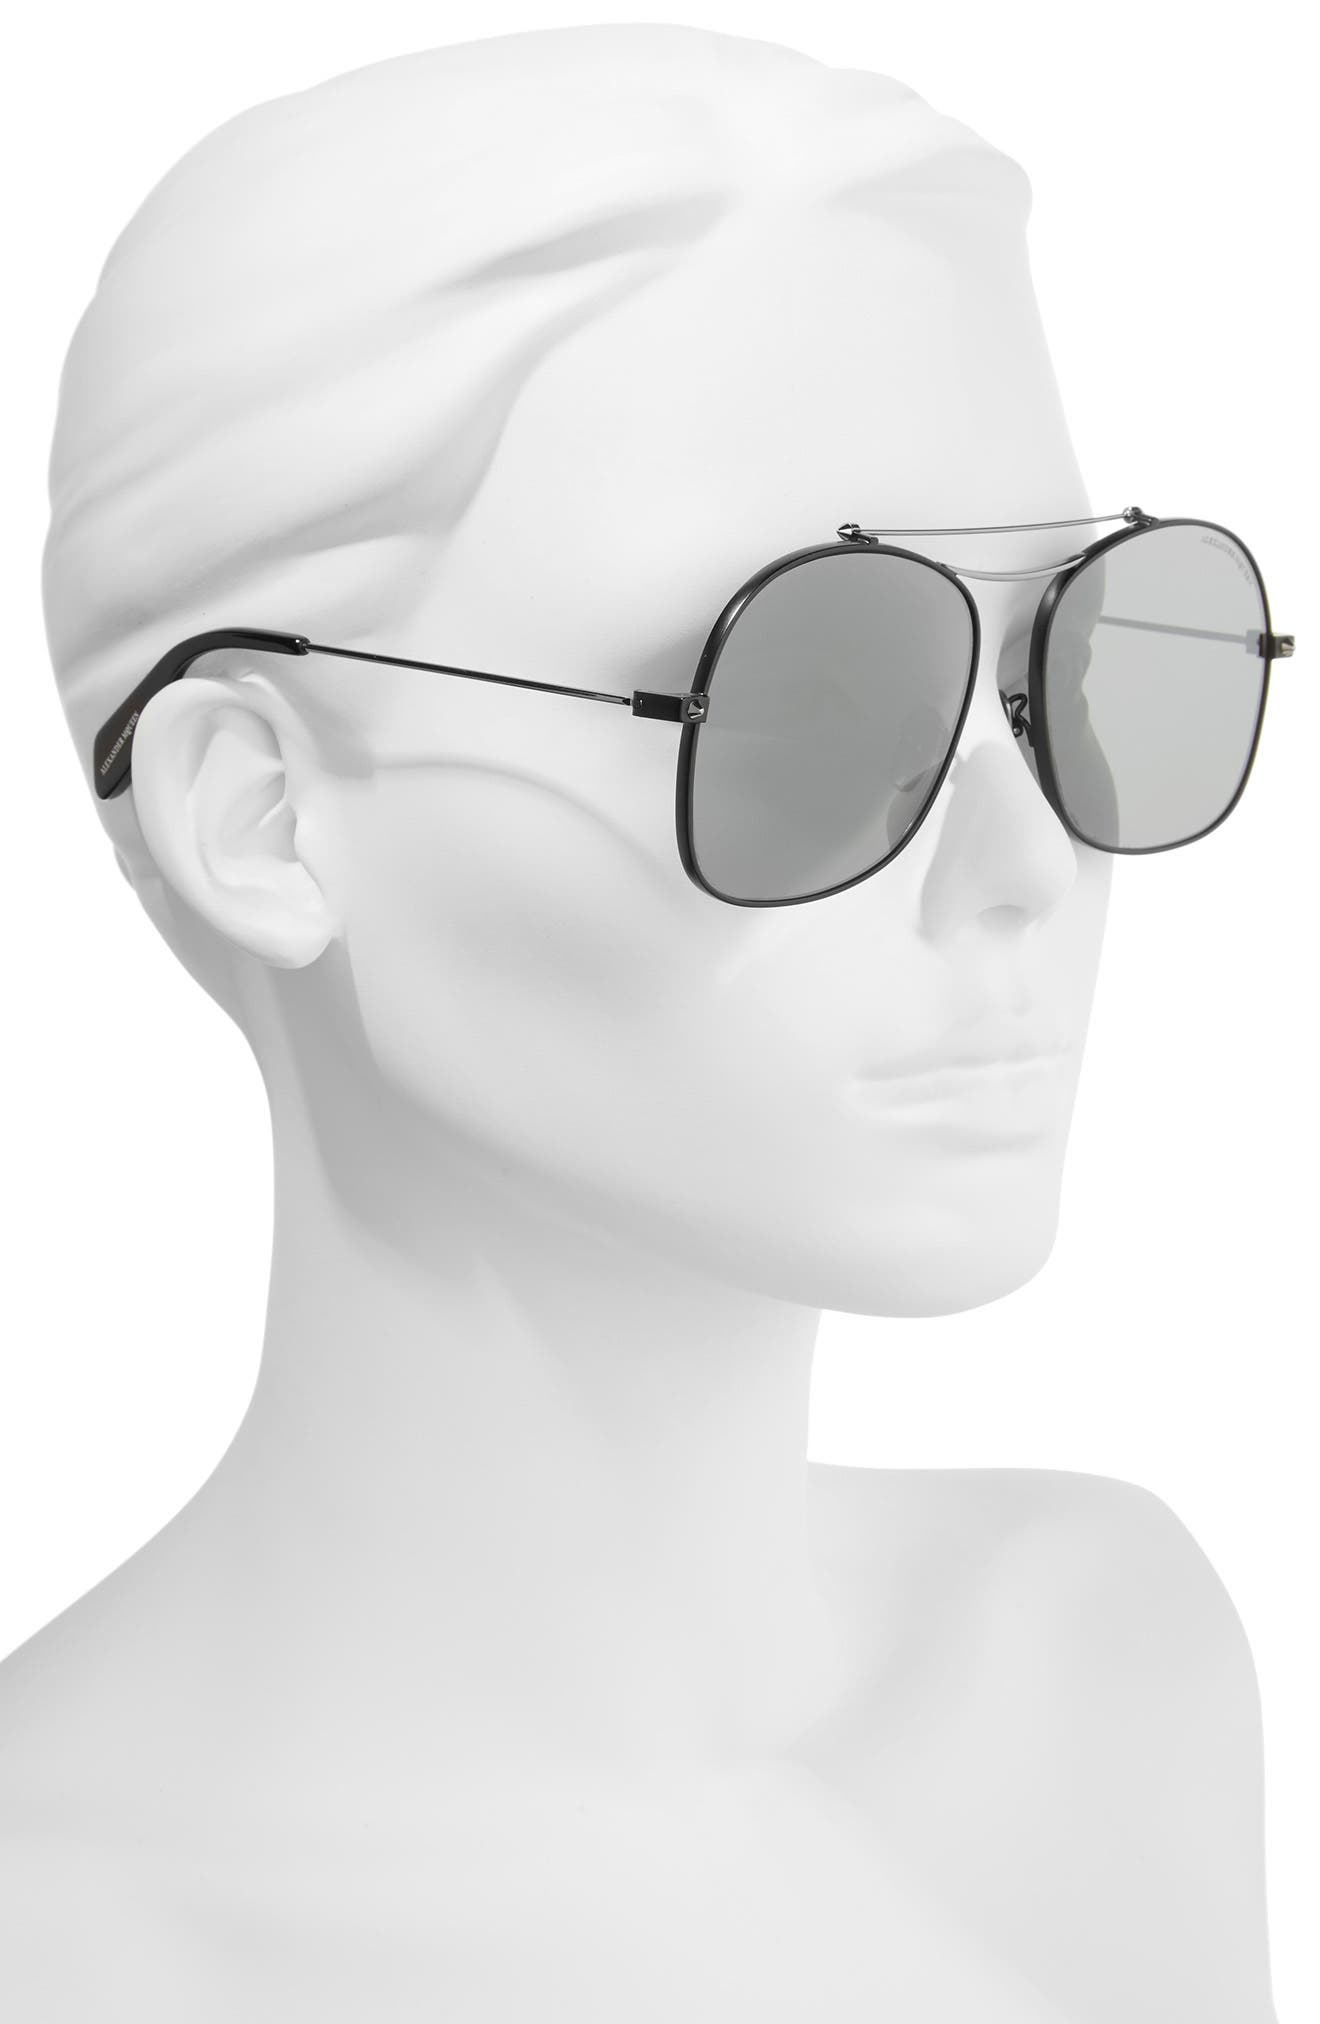 59mm Aviator Sunglasses,                             Alternate thumbnail 2, color,                             Black